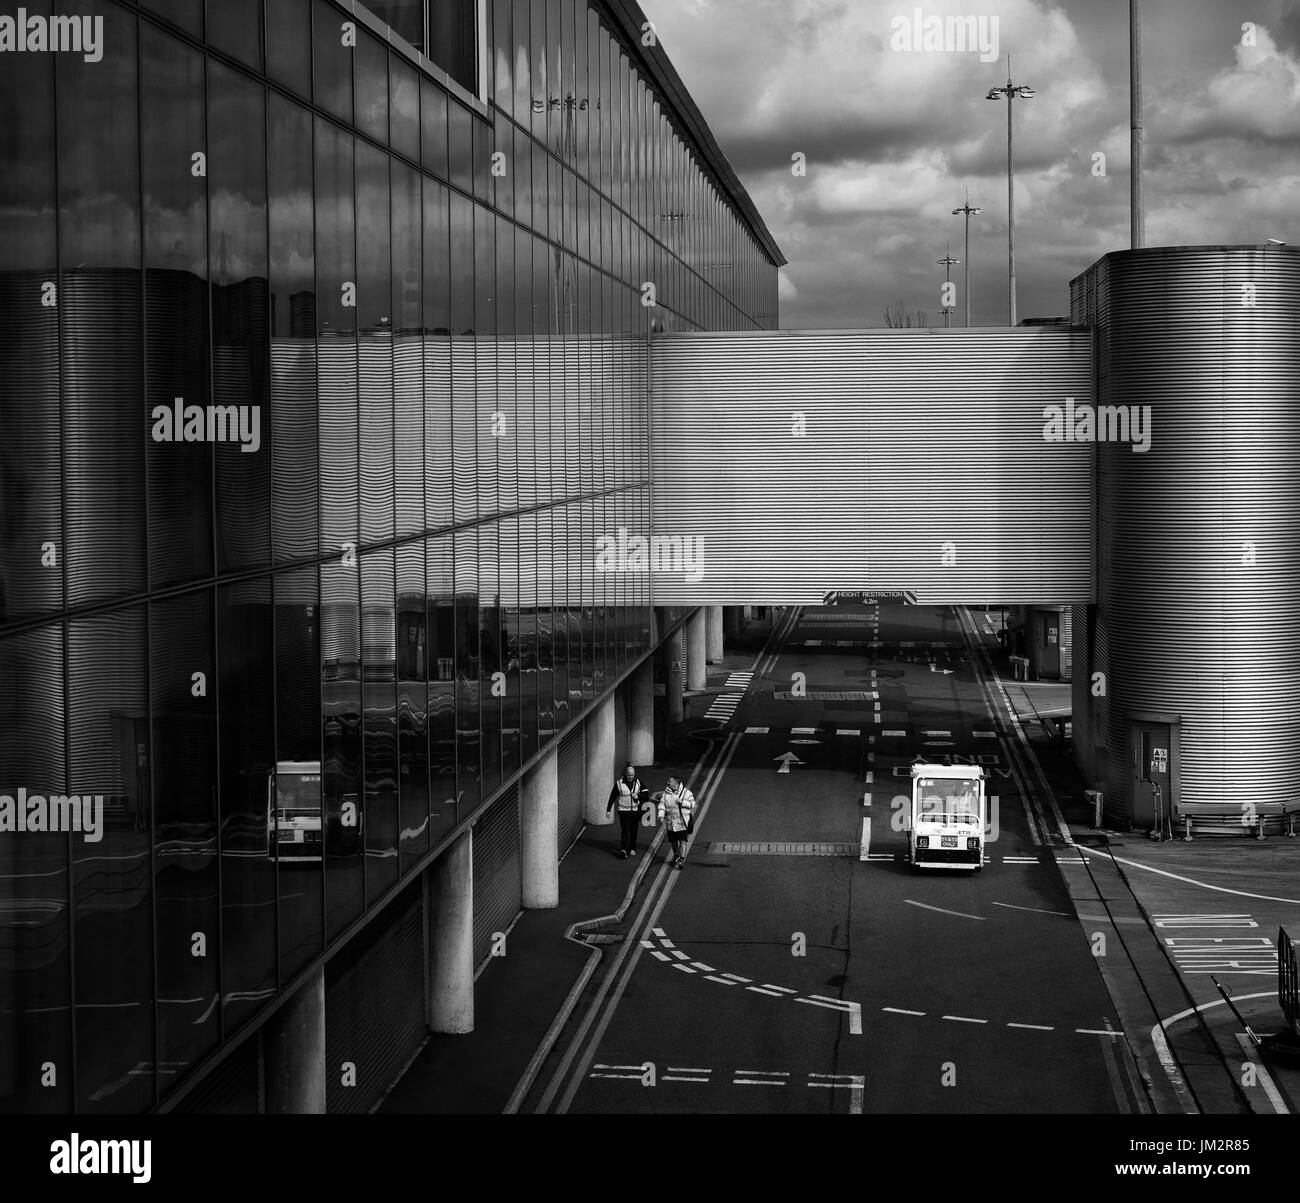 Manchester airport - terminal 3. credit: LEE RAMSDEN / ALAMY - Stock Image